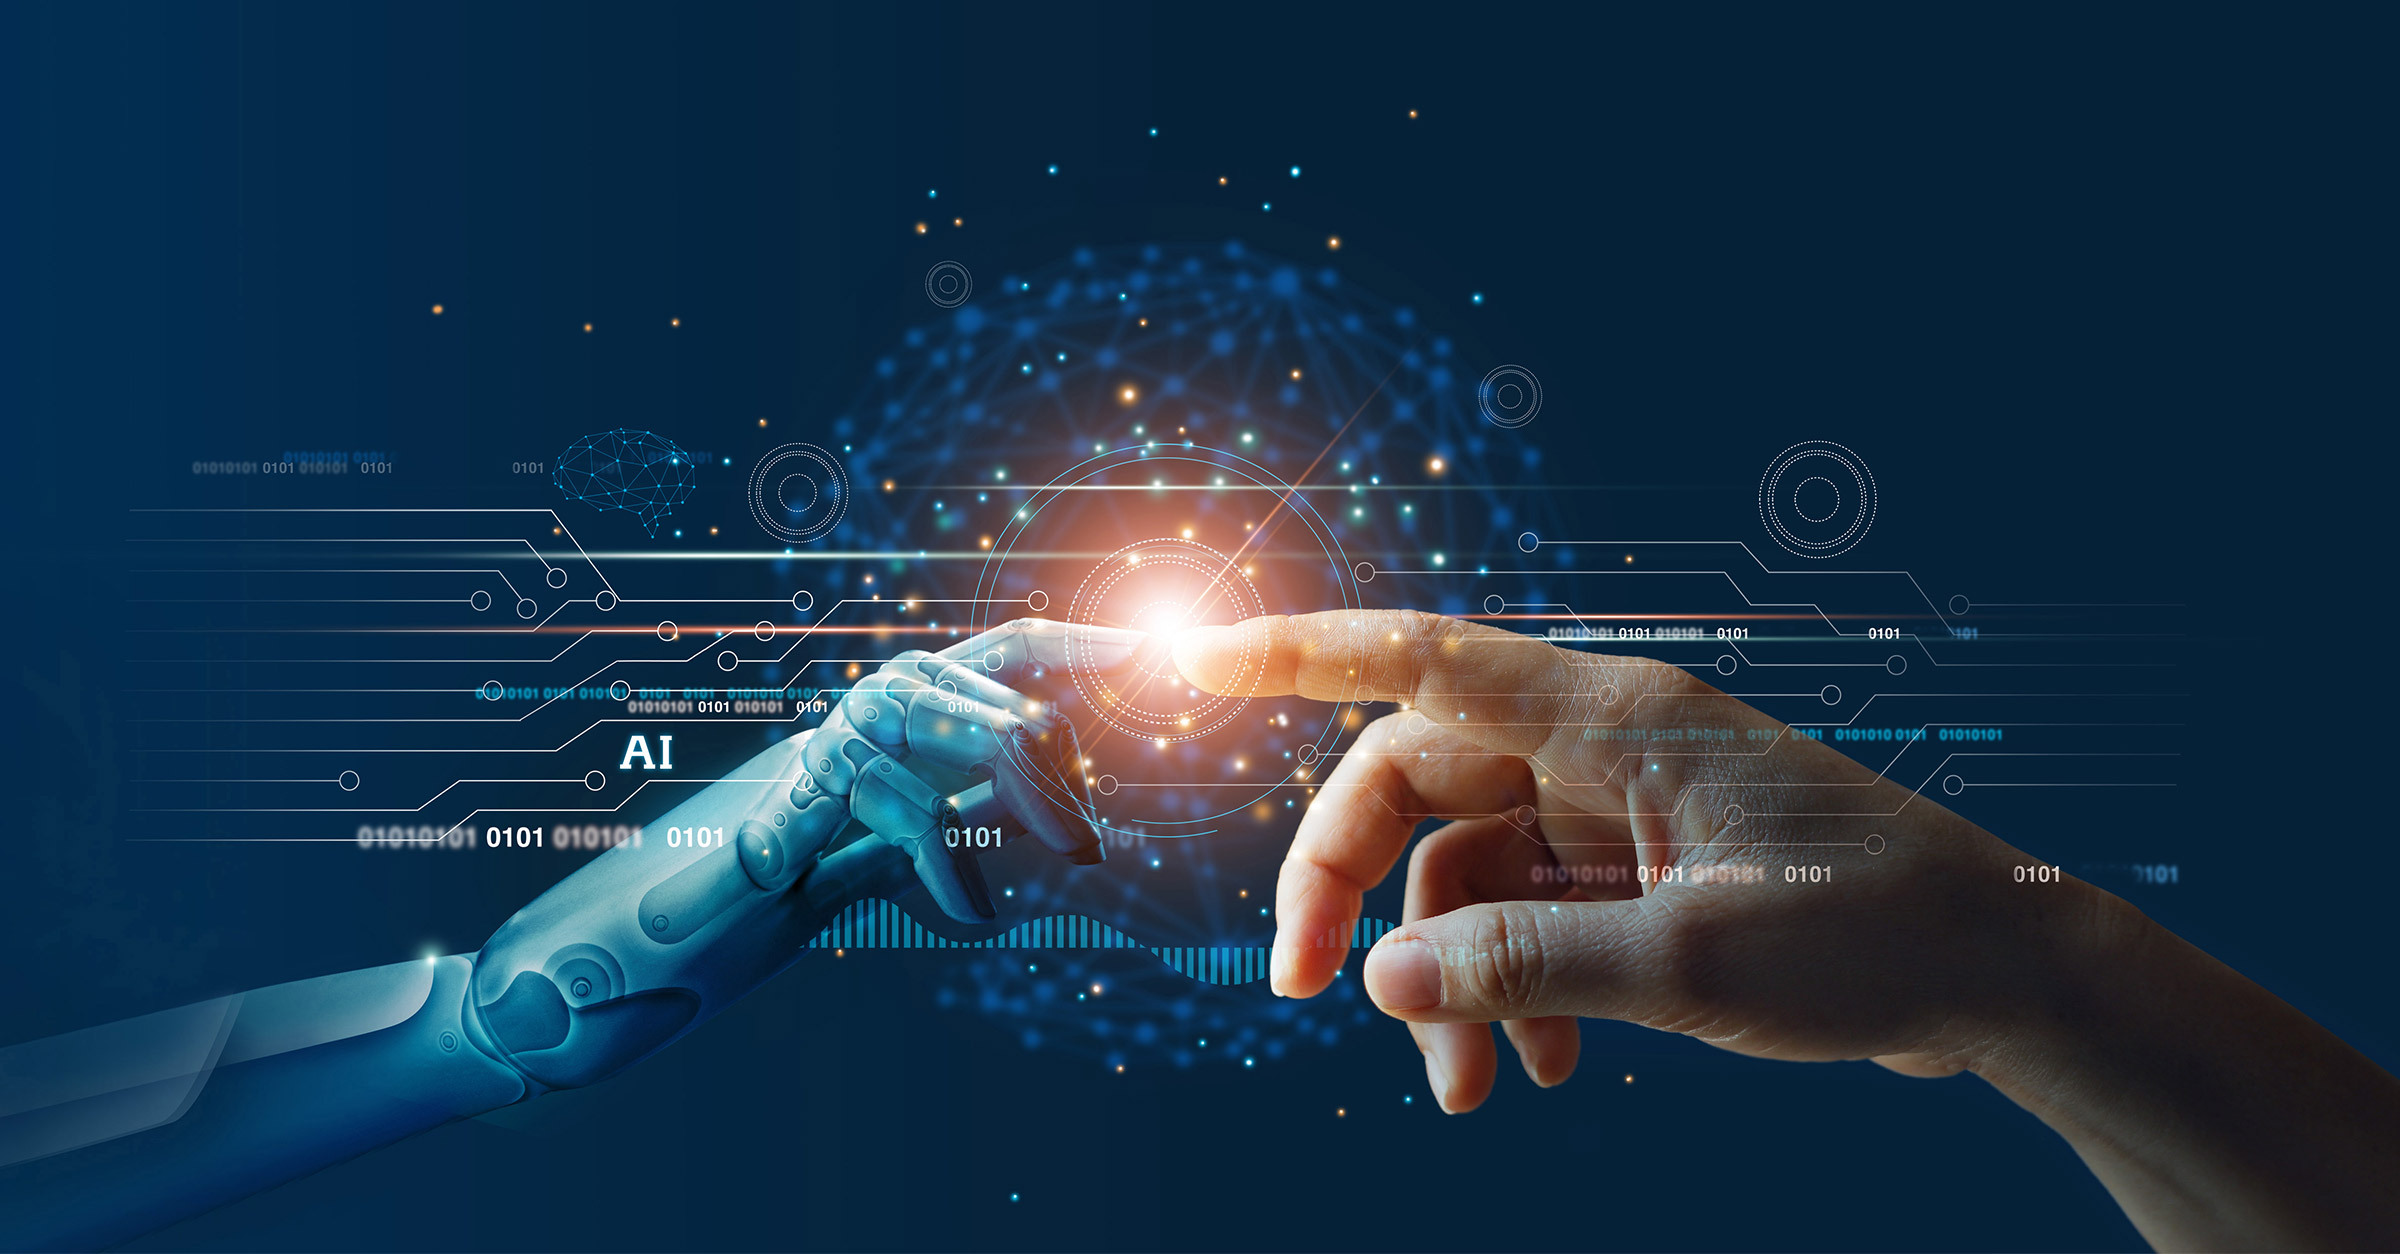 Human Rights meet Artificial Intelligence: AHRC reports on AI